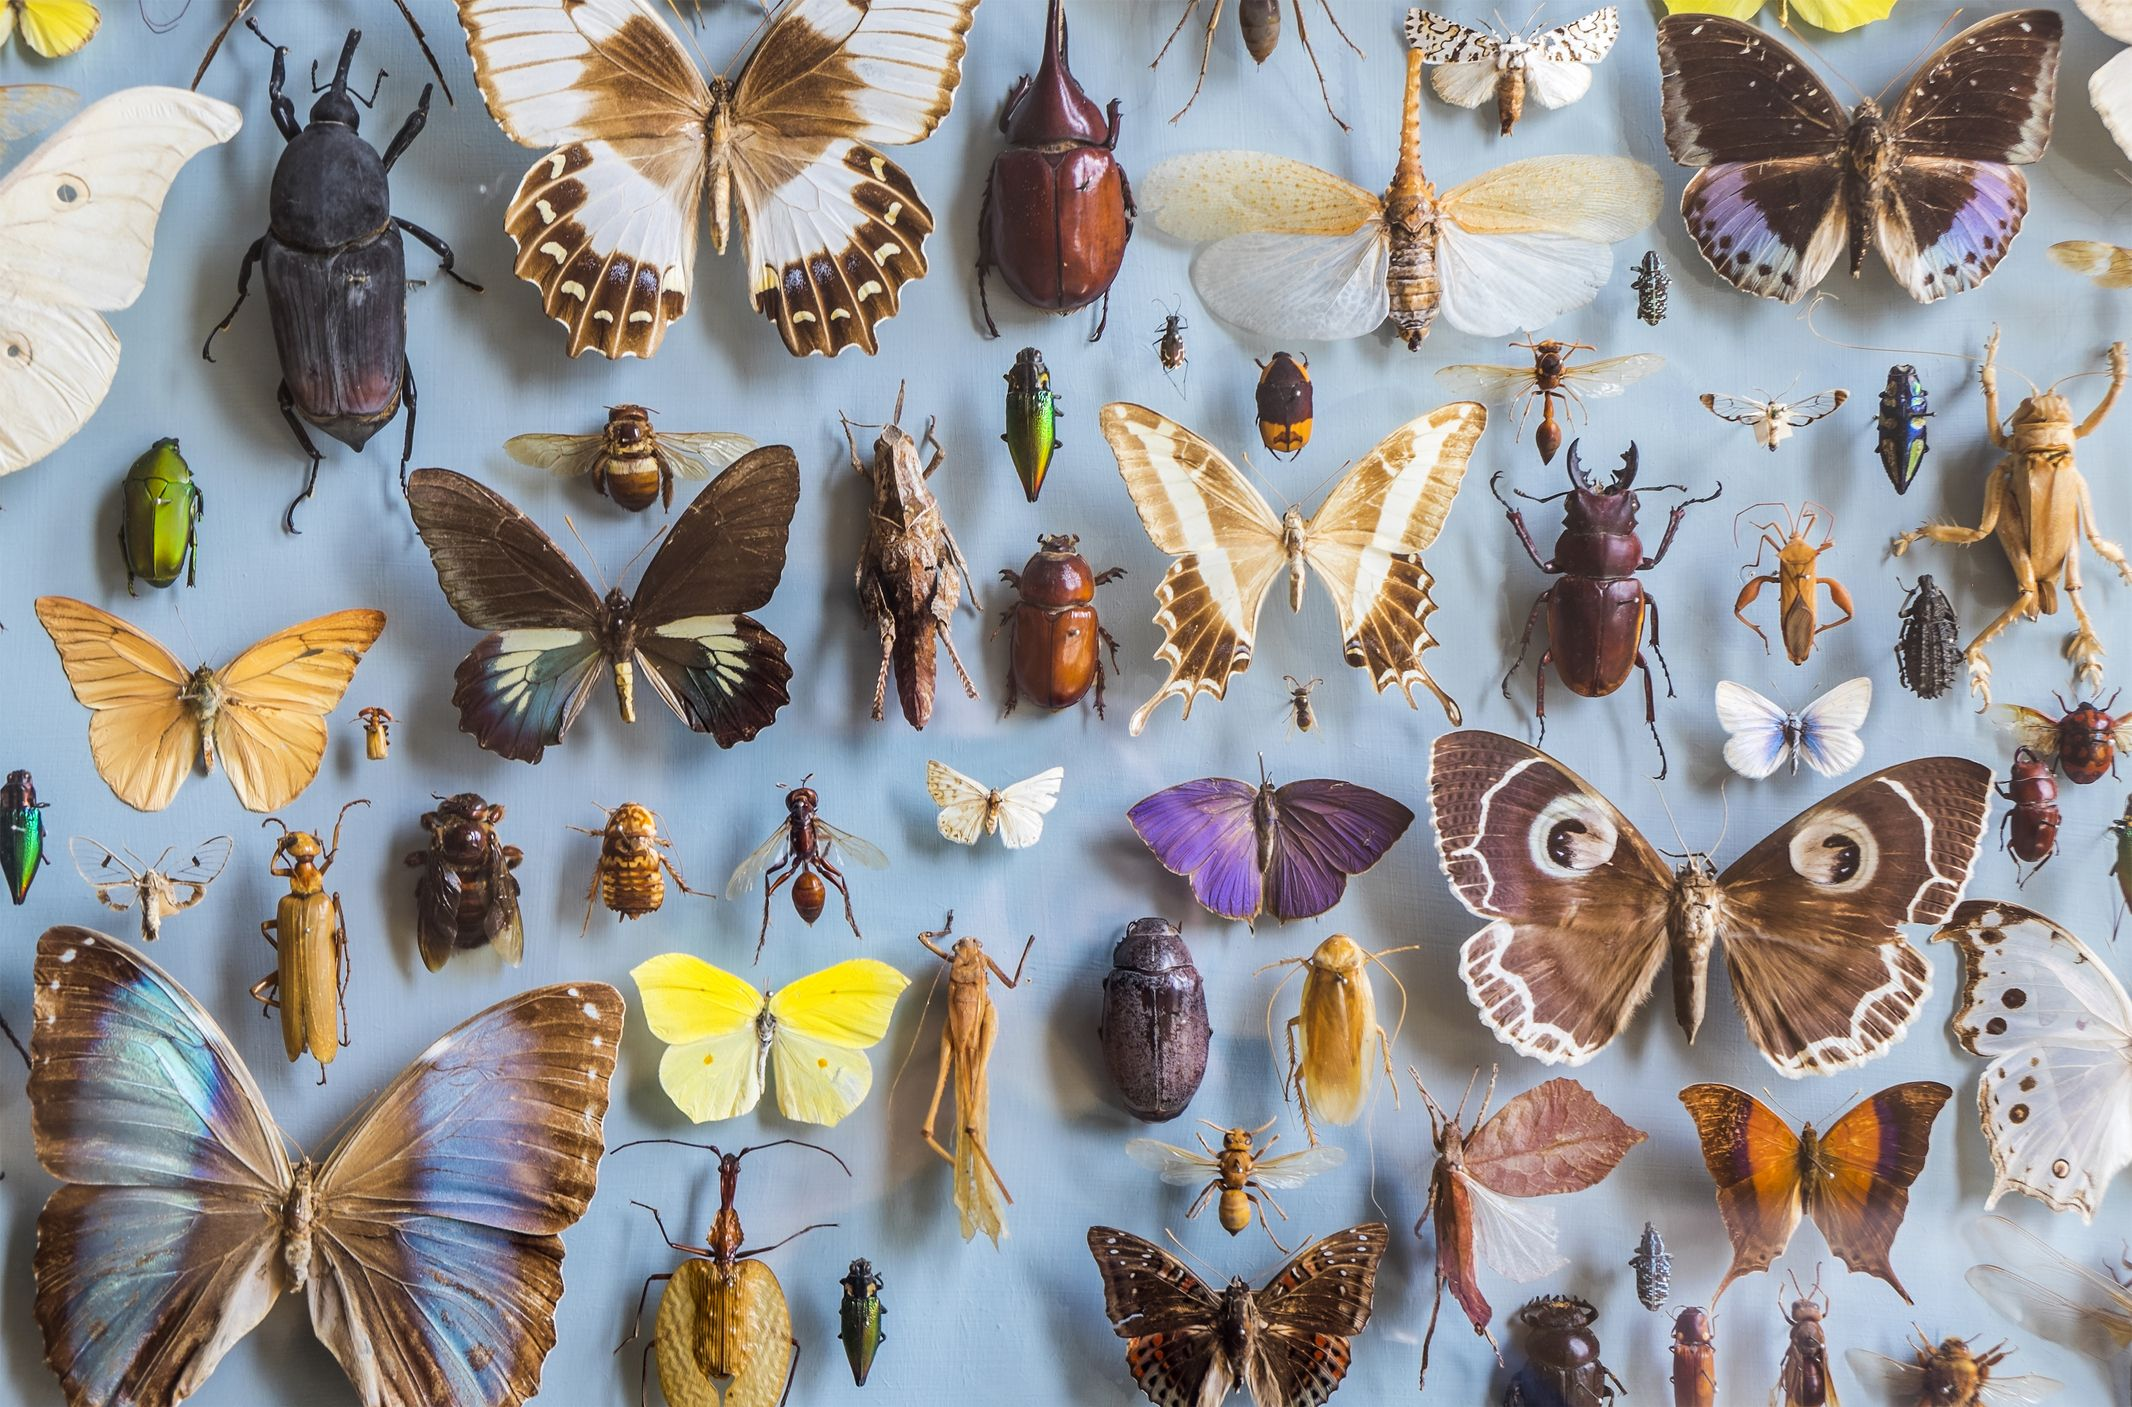 400,000 Insect Species Face Extinction